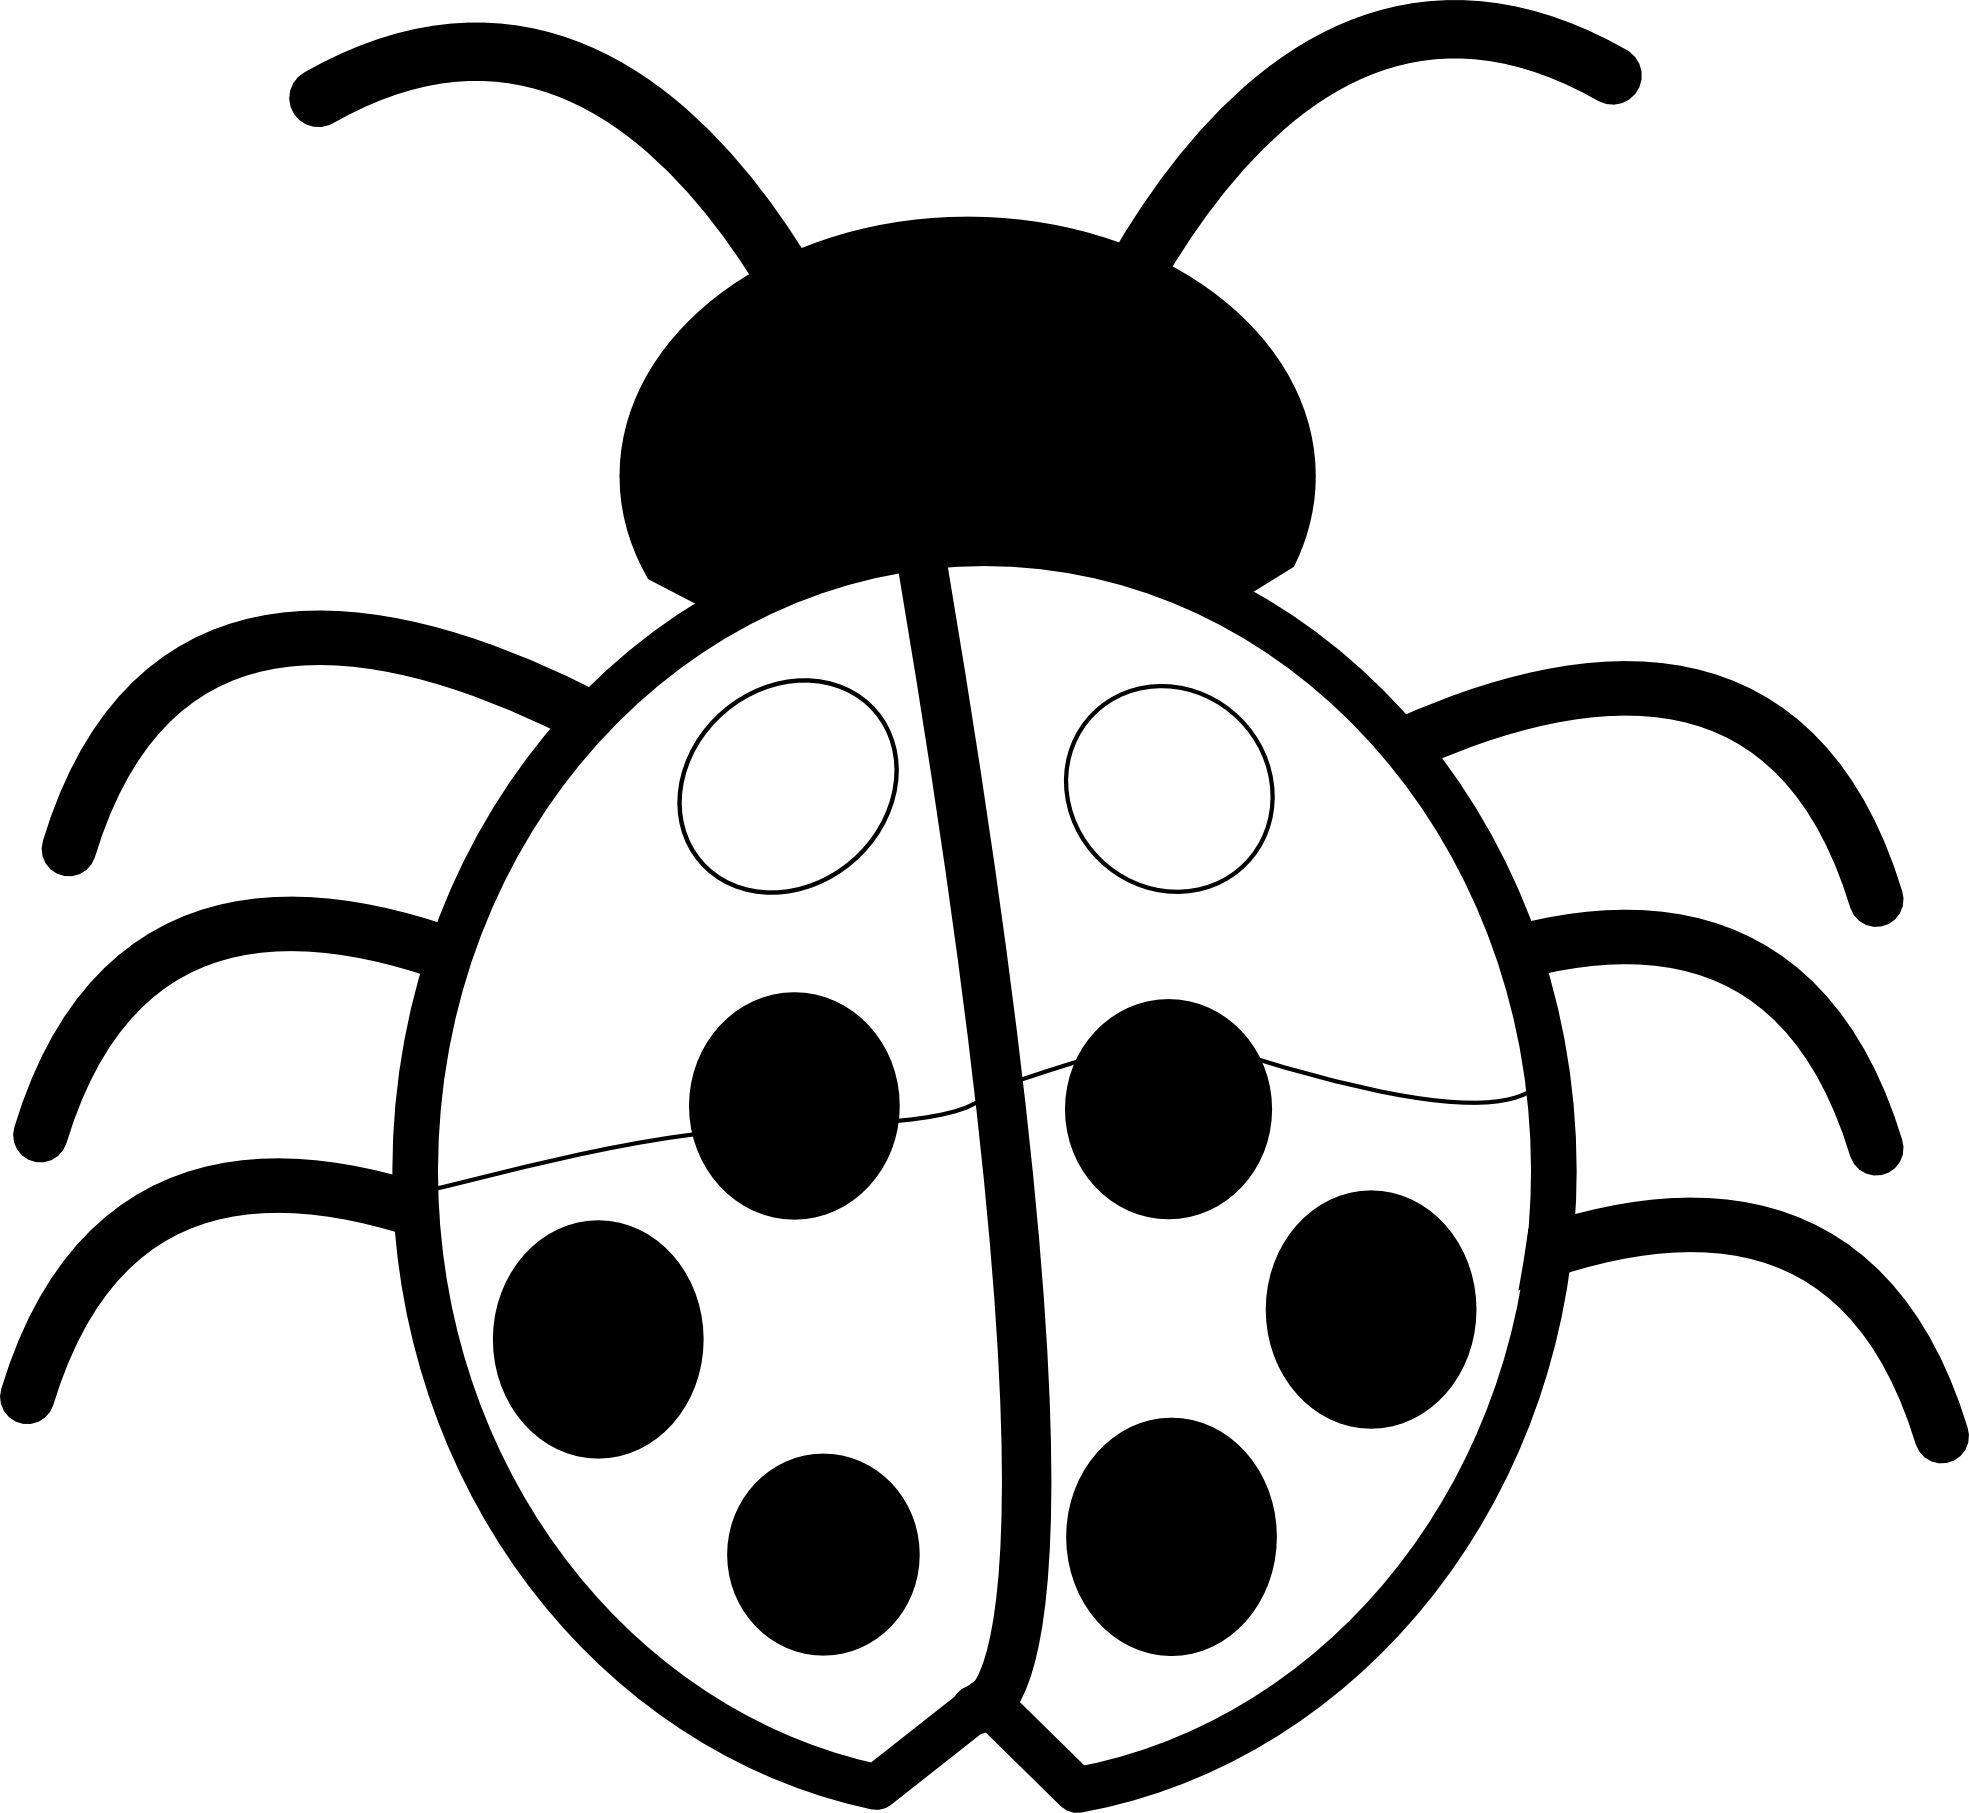 Ladybugs clipart symmetrical house. Ladybug black and white